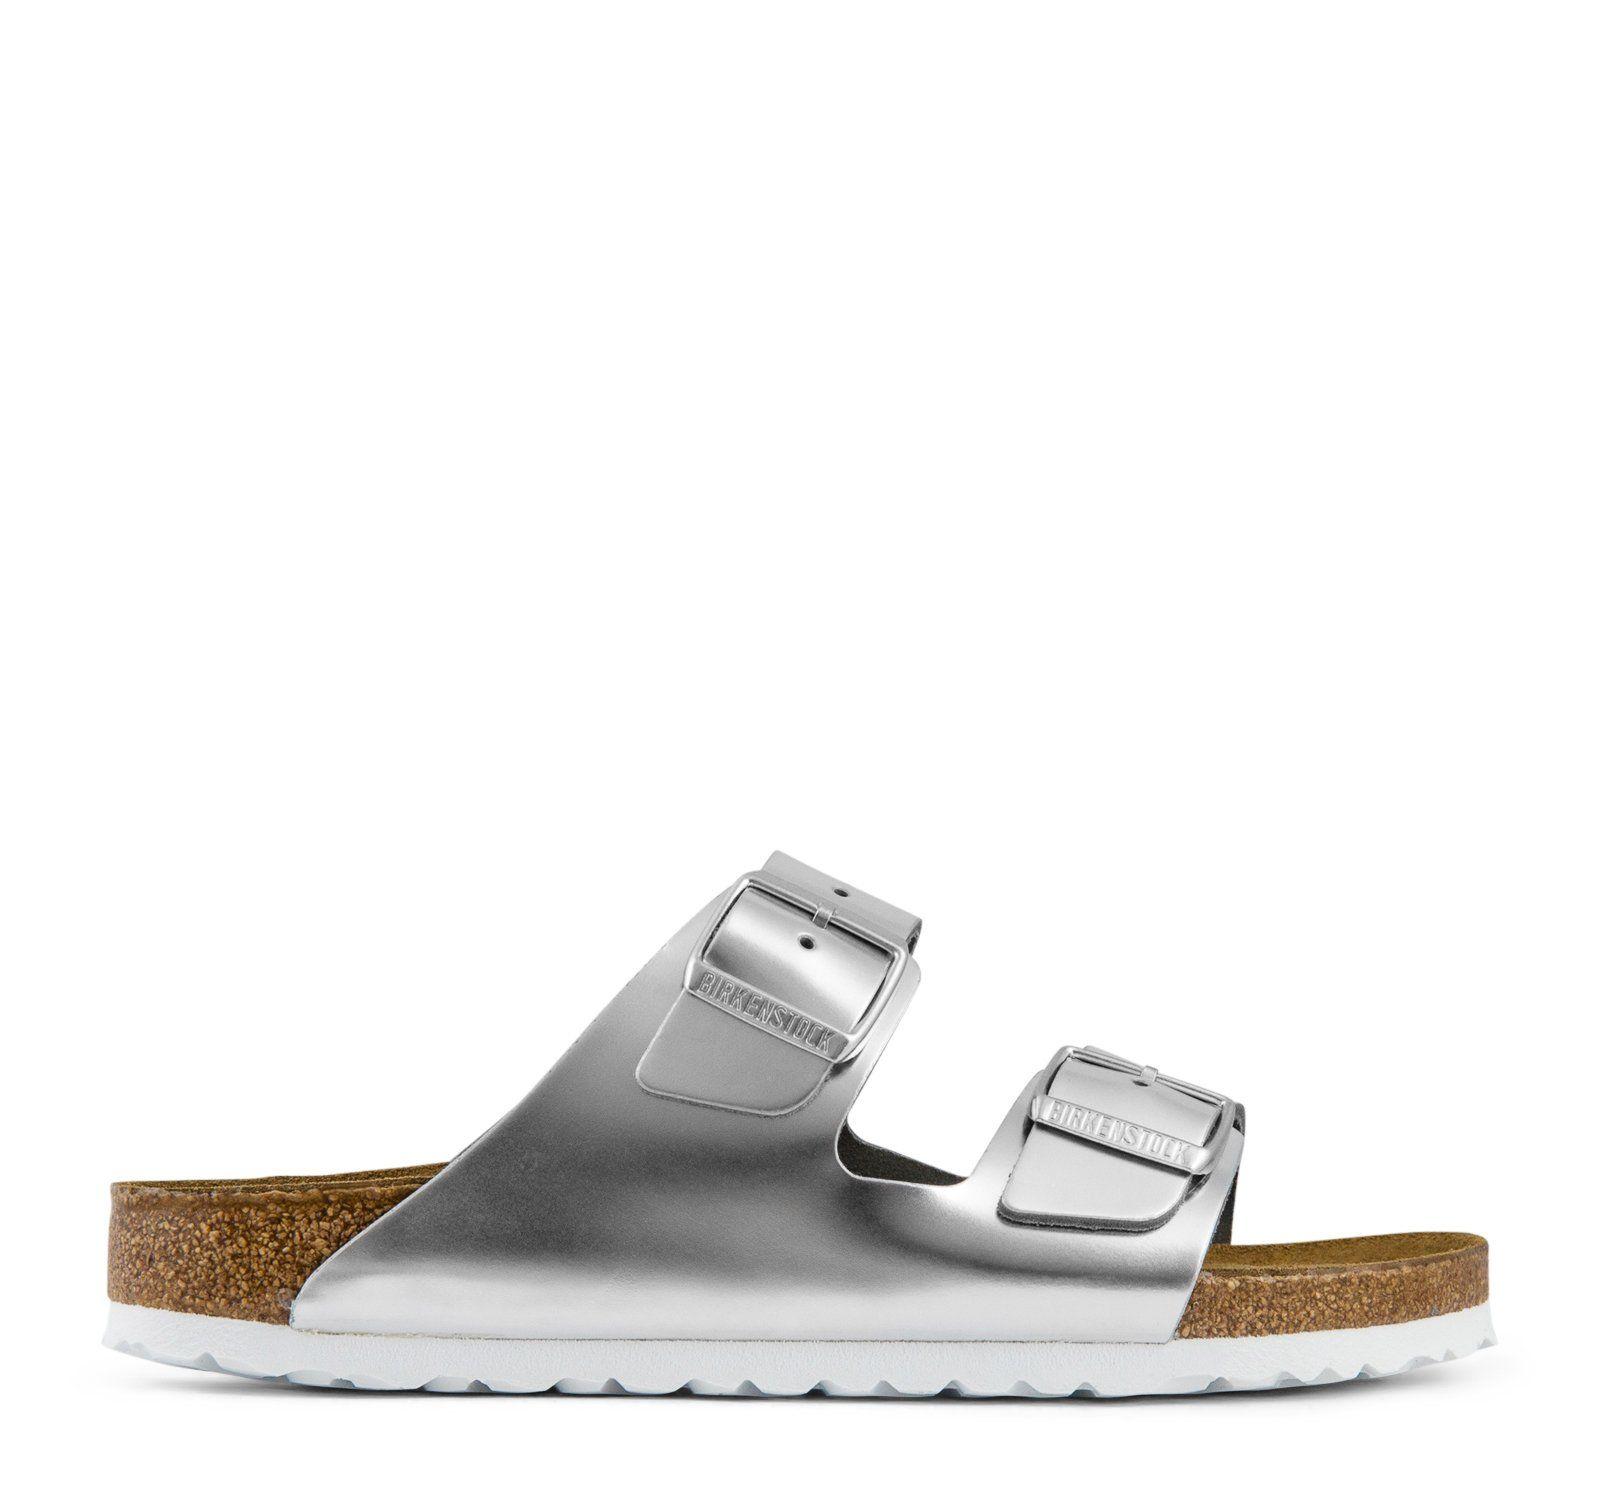 7cfa5d362 Birkenstock Arizona Soft Footbed Women s - Metallic Silver ...